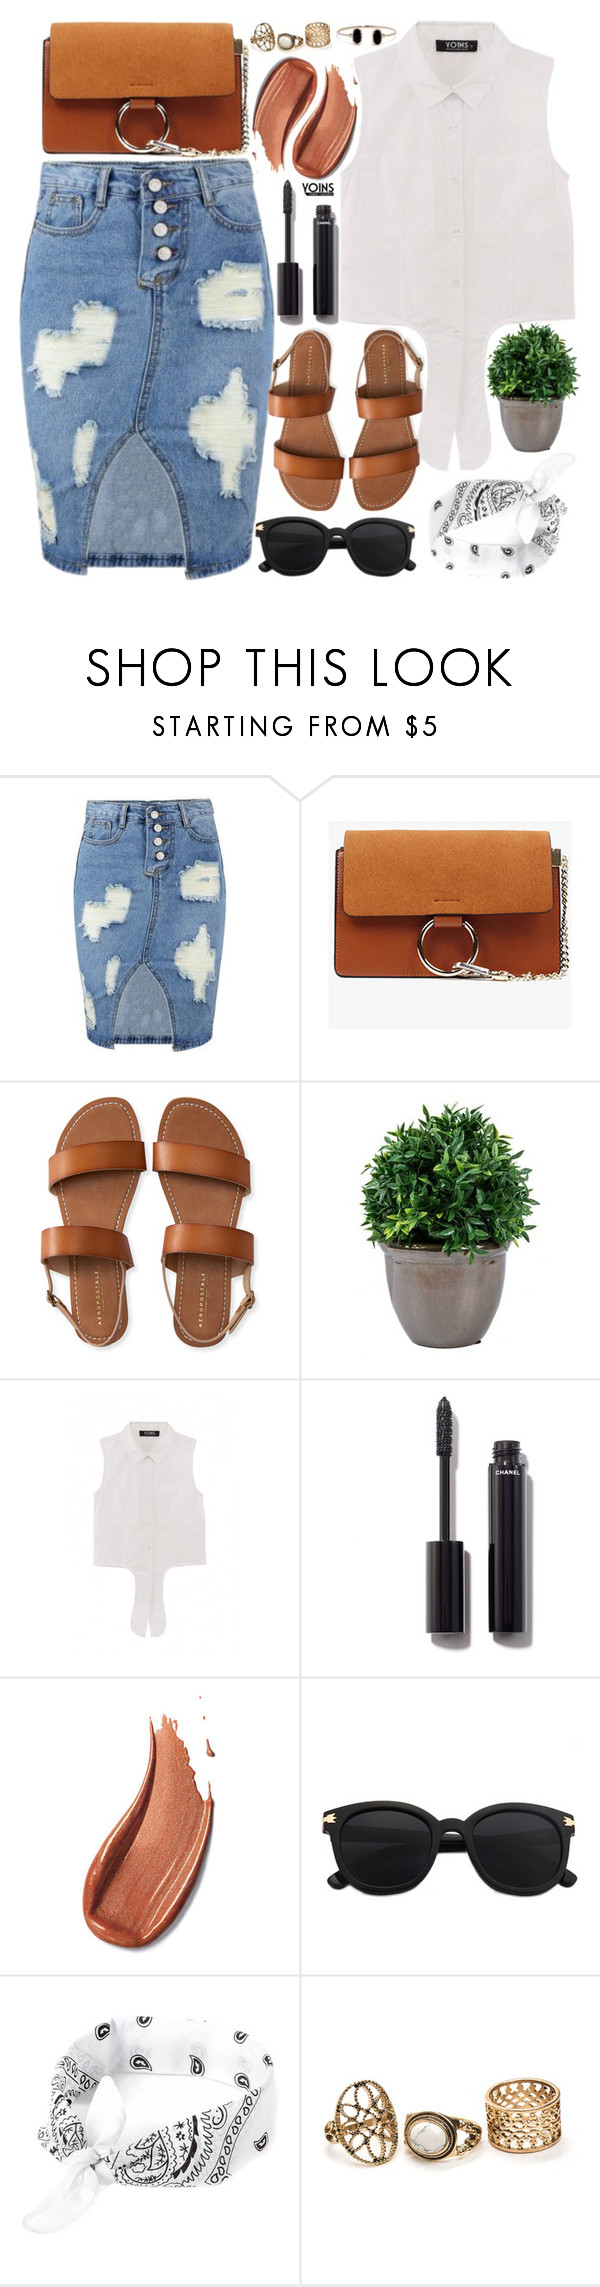 """""""Summer Wishlist"""" by vanjazivadinovic ❤ liked on Polyvore featuring Aéropostale, Chanel, Lulu*s, polyvoreeditorial, Poyvore, yoins, yoinscollection and loveyoins"""